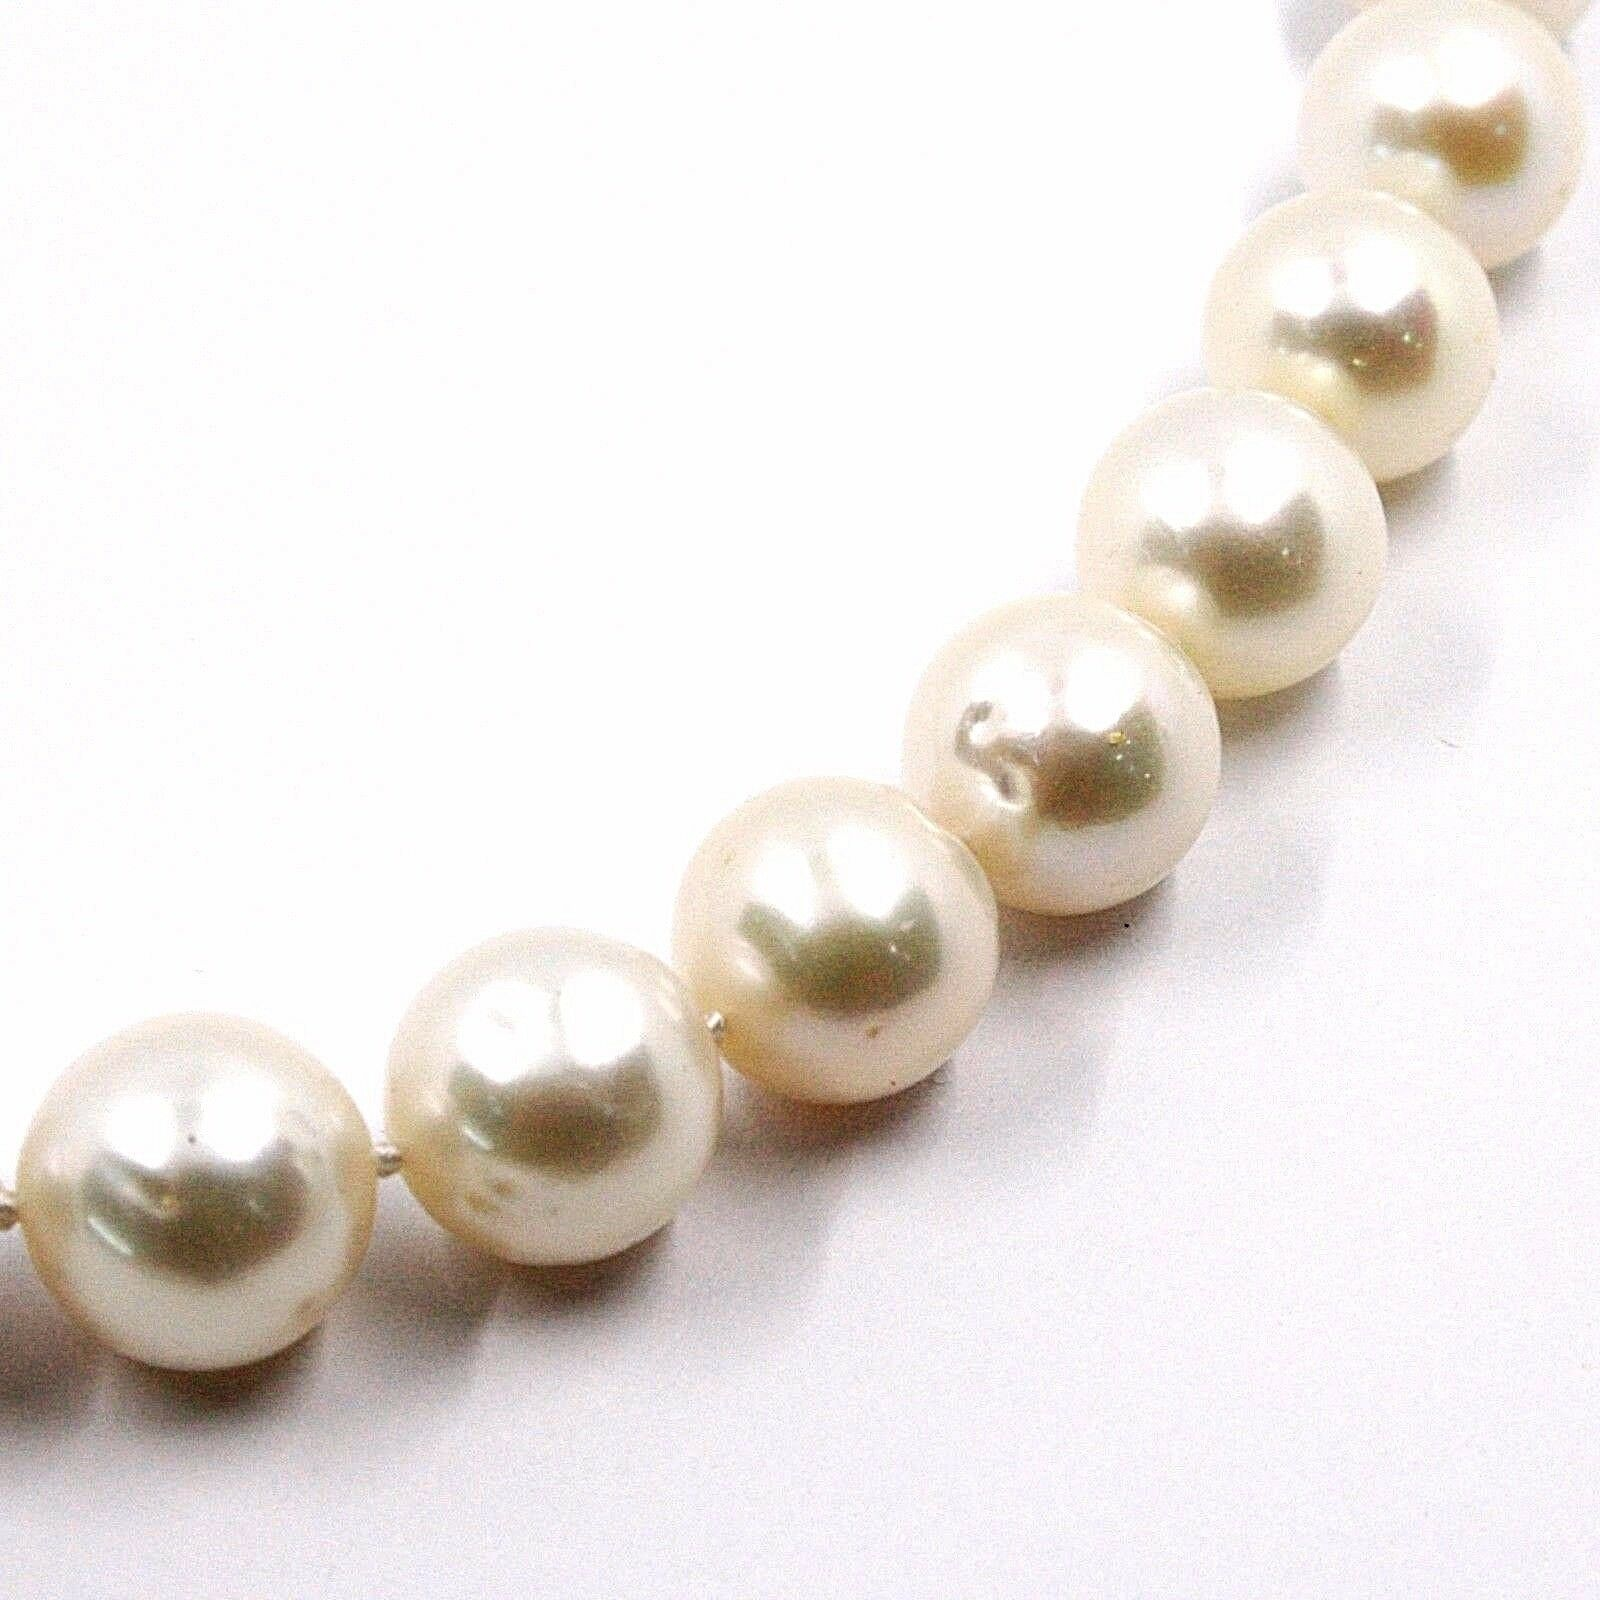 COLLIER OR BLANC 18K, ZIRCONIA, PERLES GRAND 12 MM, BLANCHE, D'EAU DOUCE